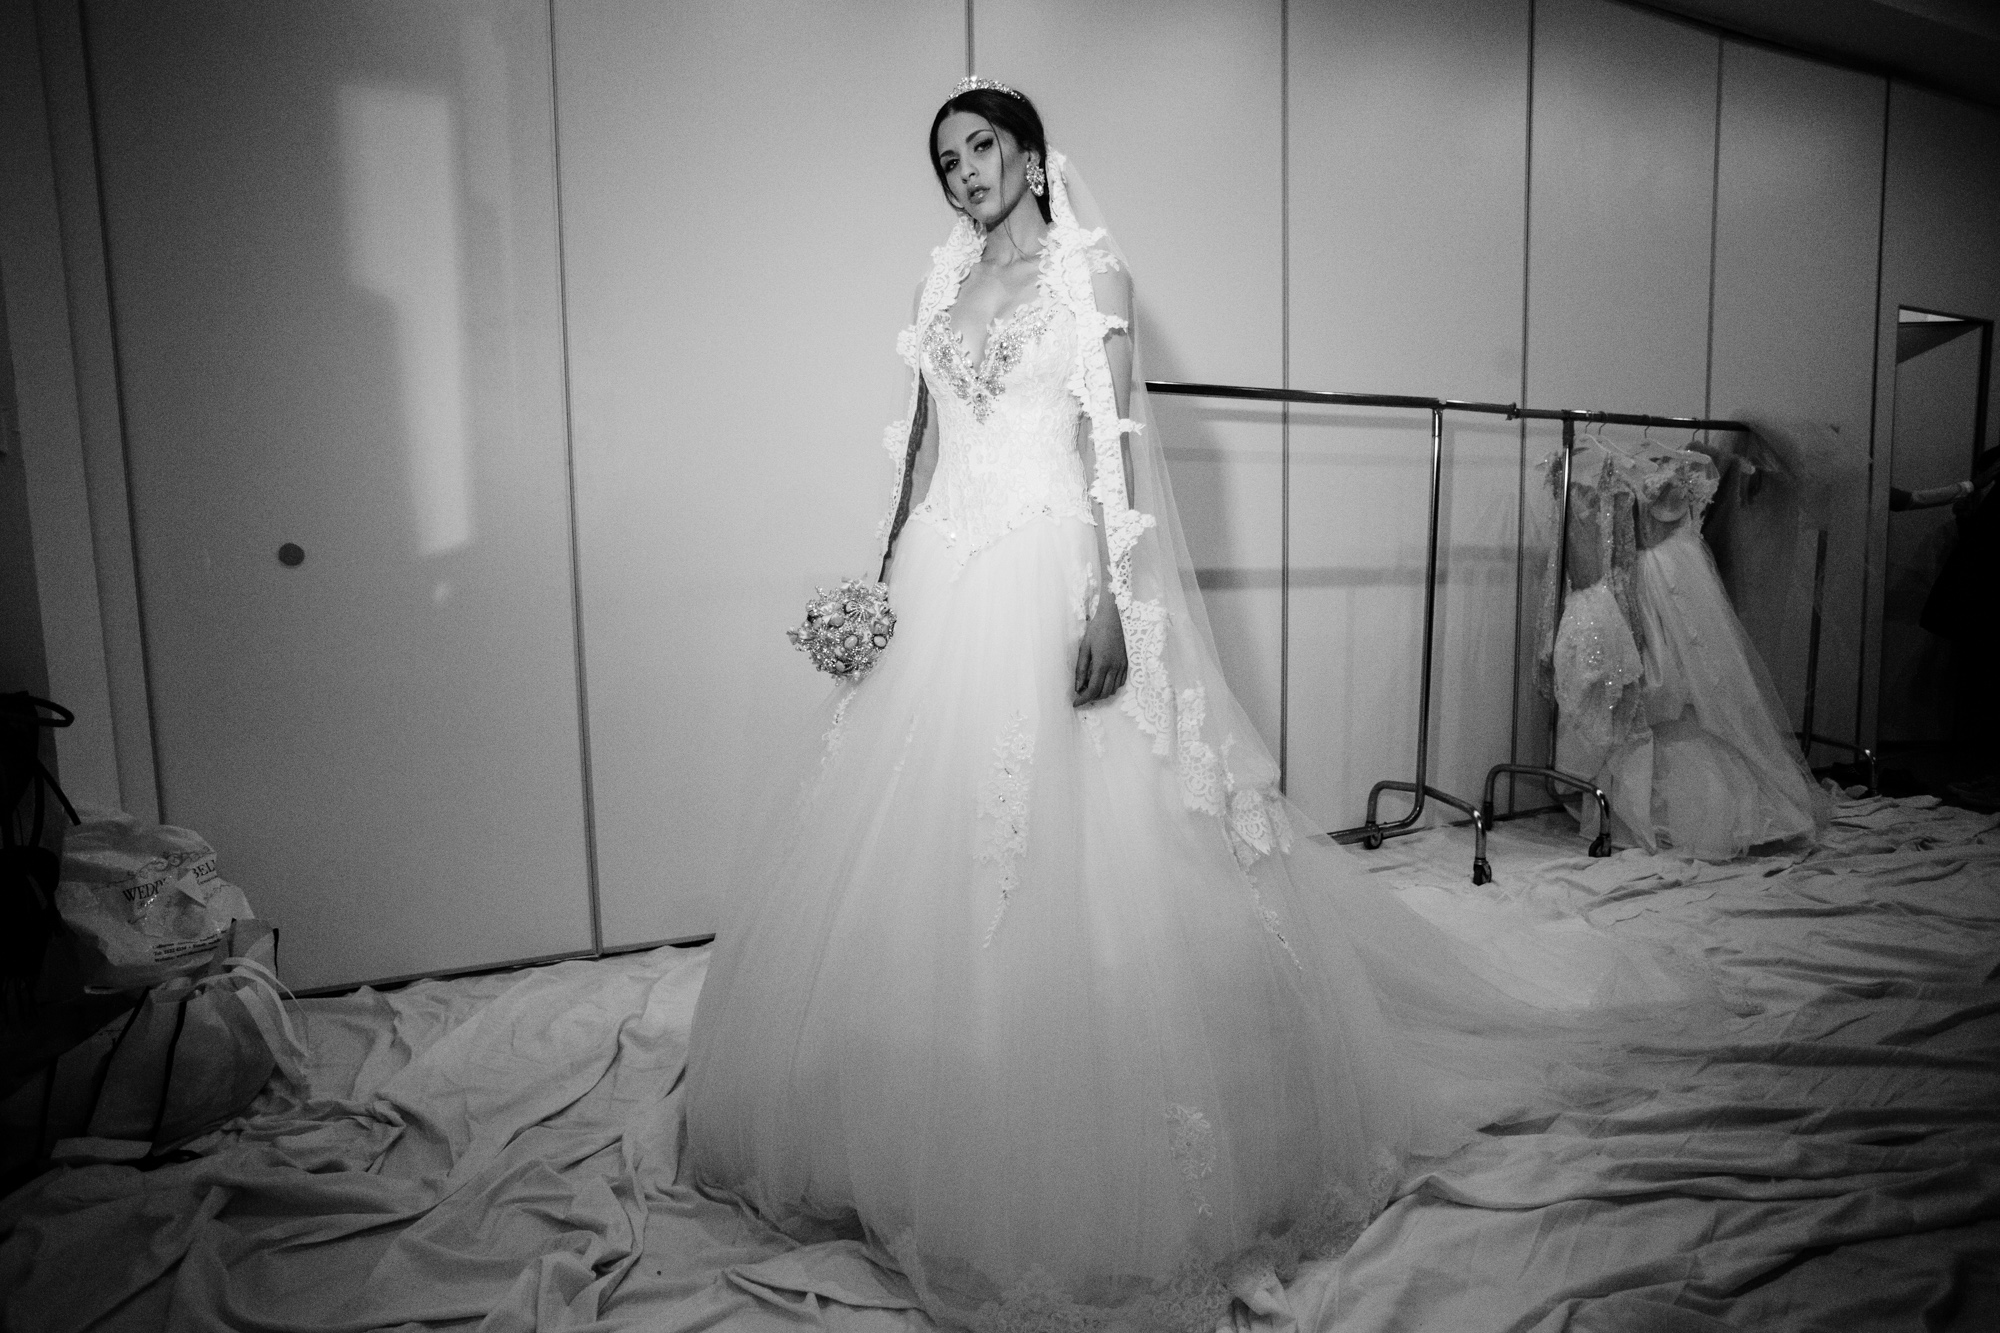 Wedding Bells Backstage - Malta Fashion Week